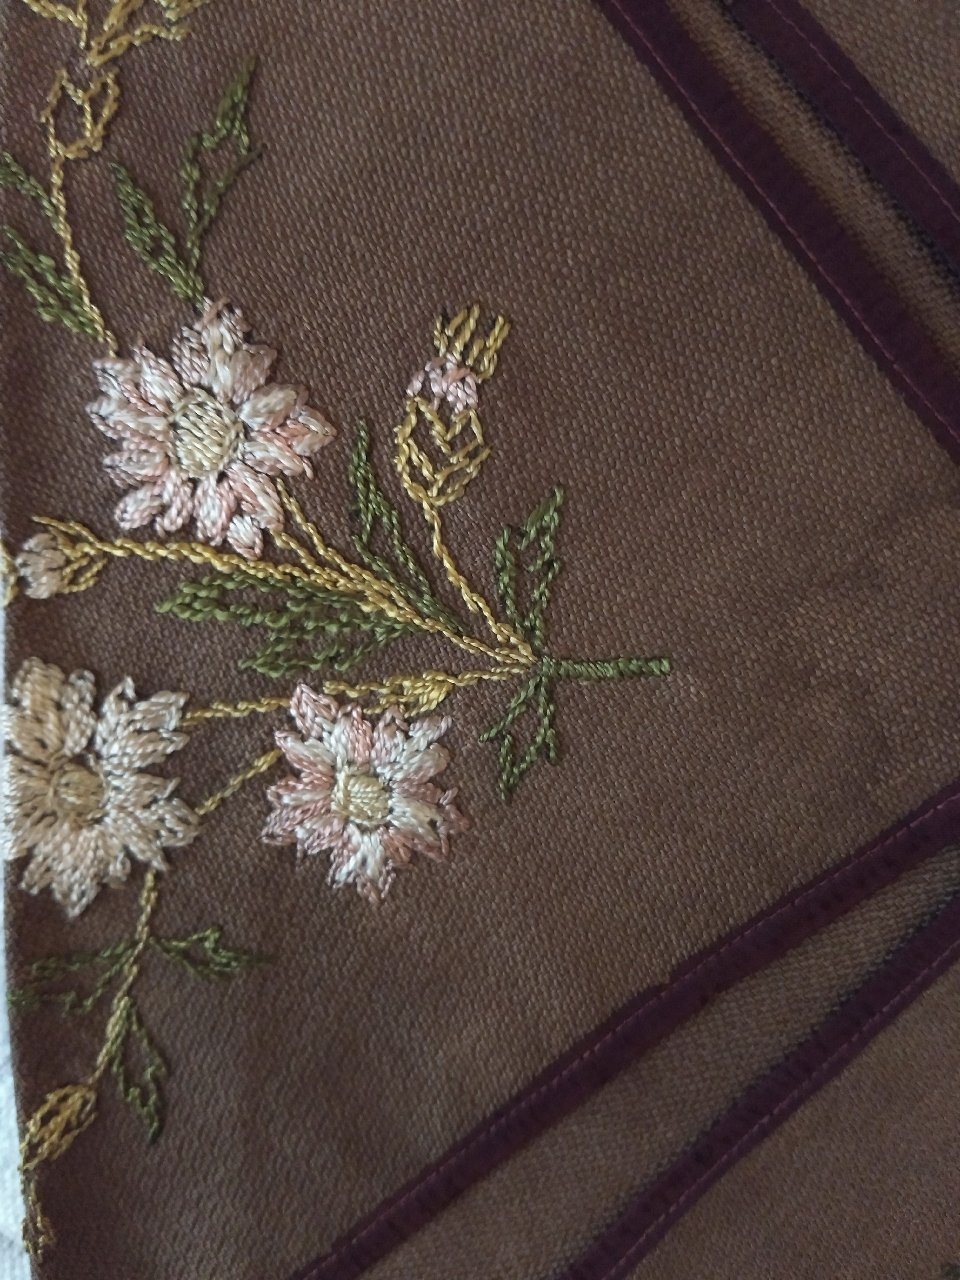 Society Silk Embroidery Napkin Holder Linen Ribbon 1880s Victorian The Gatherings Antique Vintage